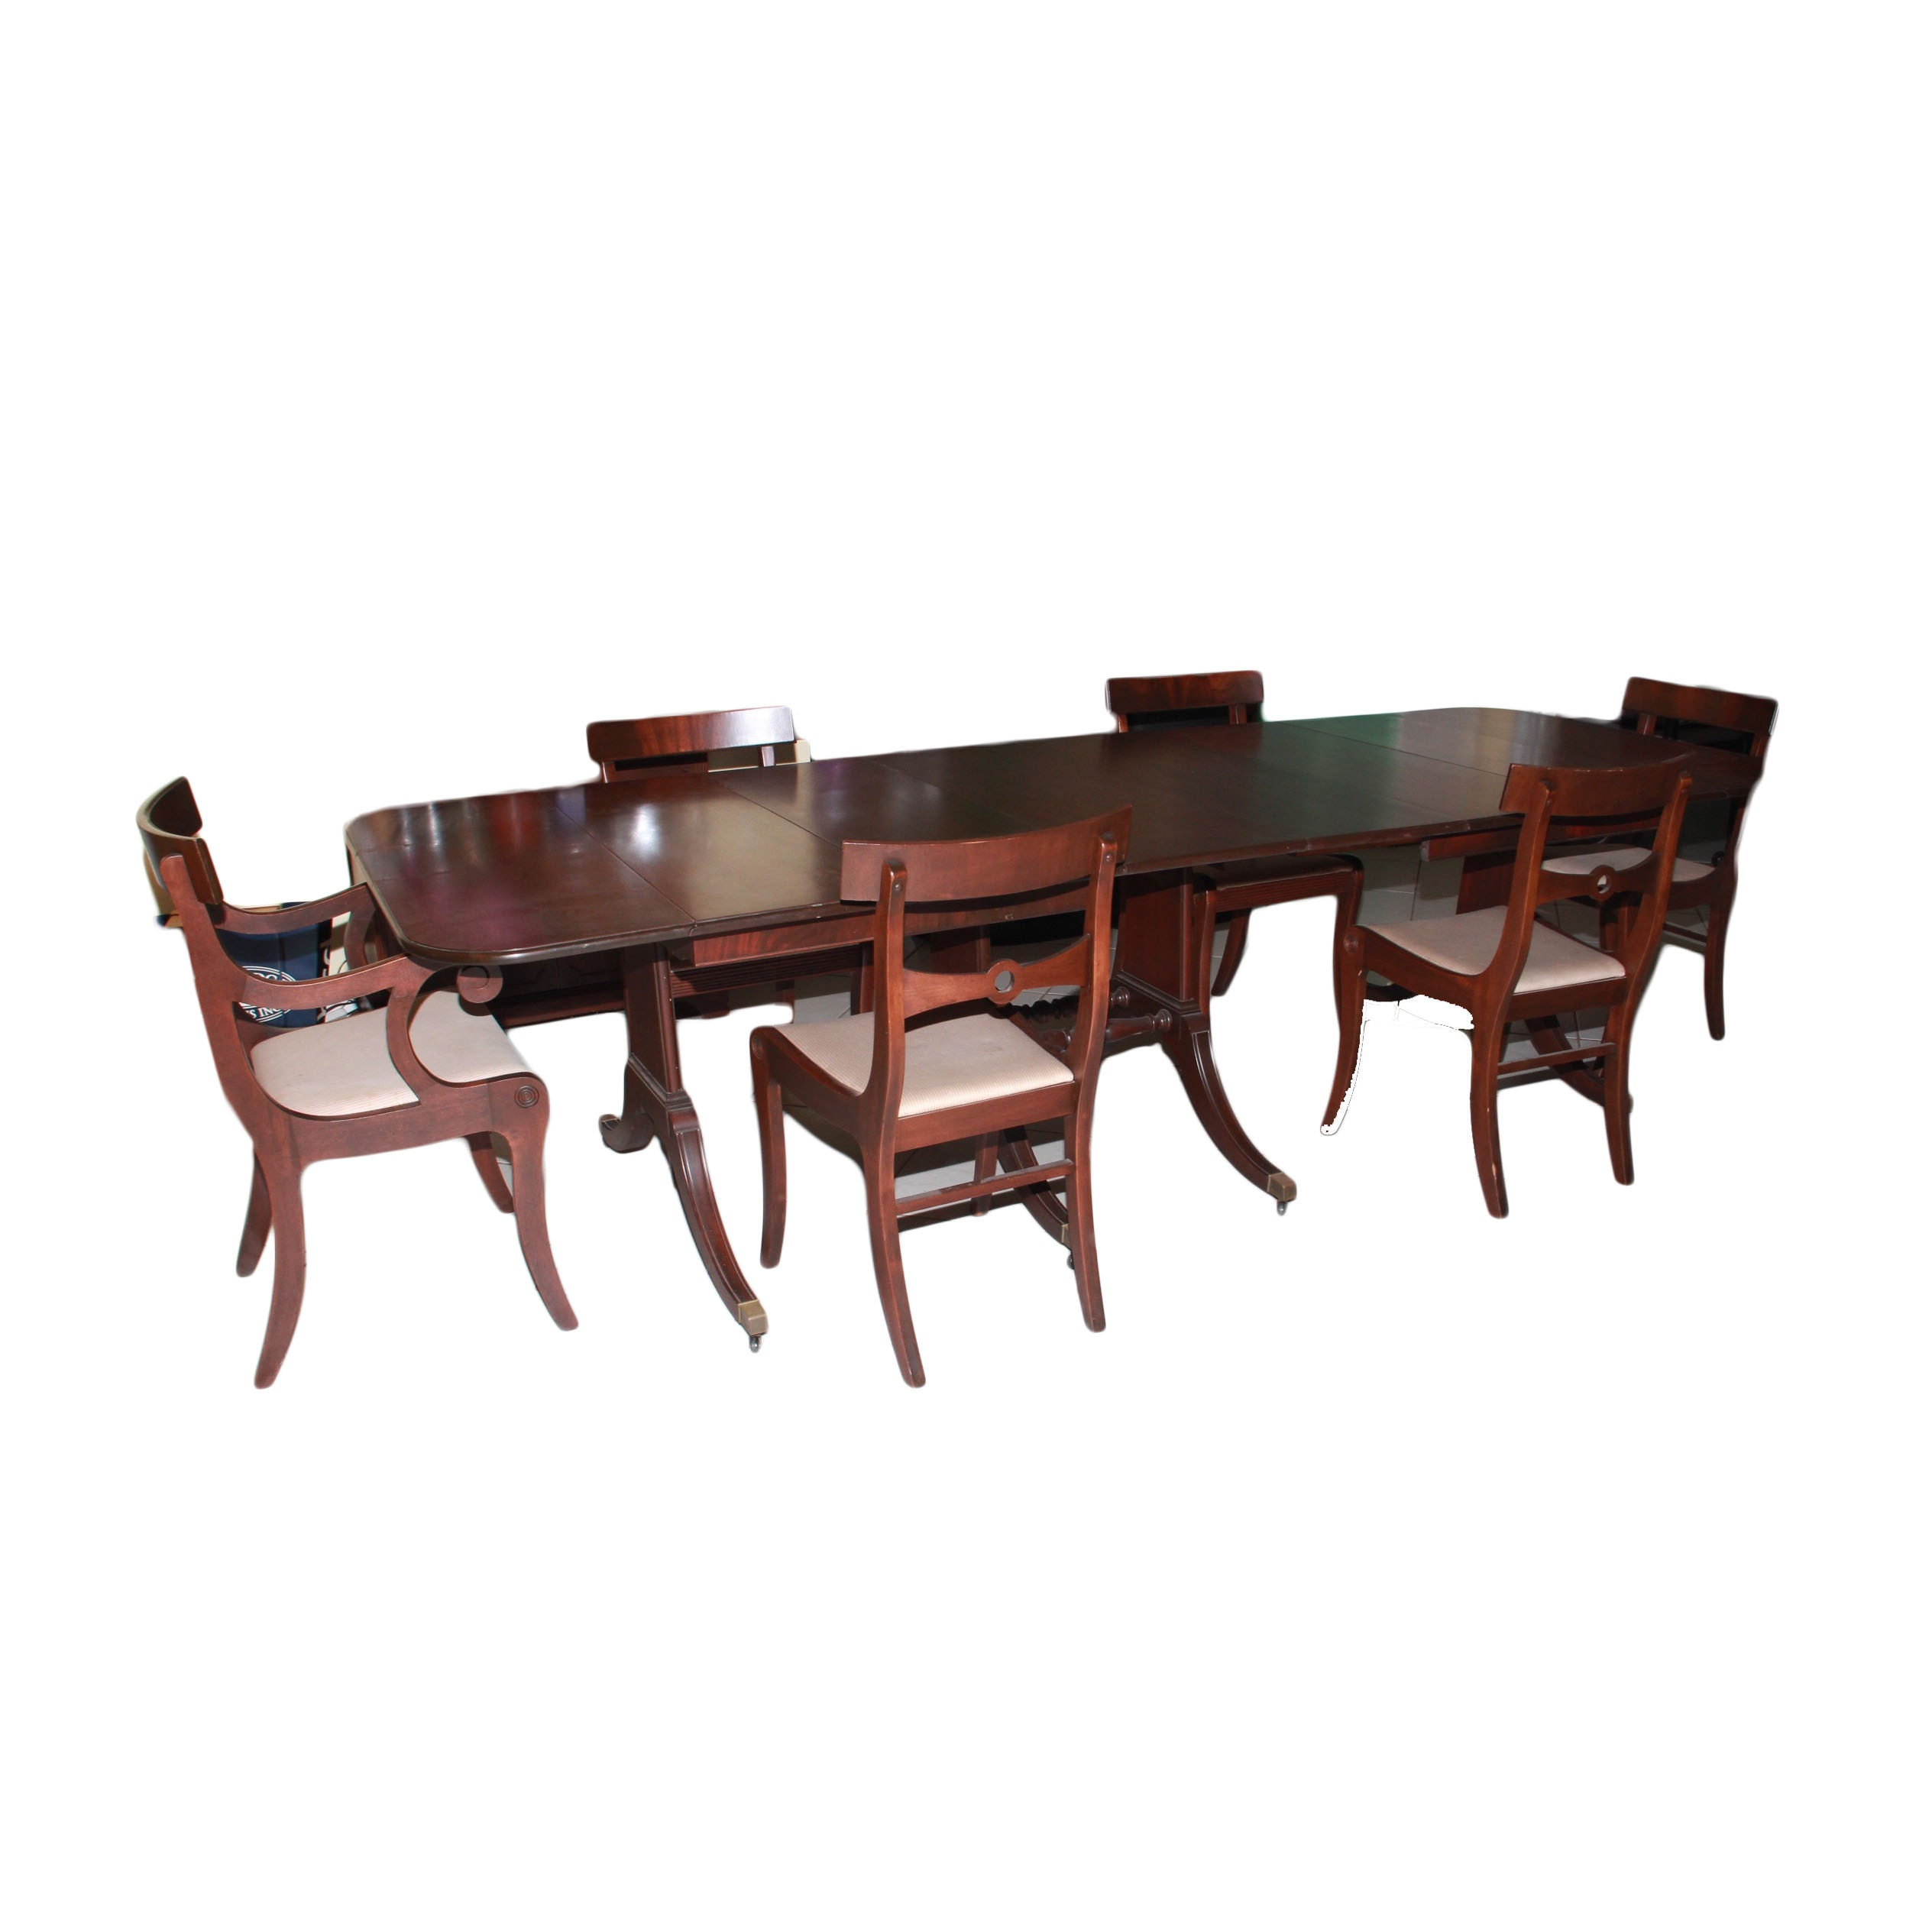 Early 20th Century Duncan Phyfe Style Dining Room Set